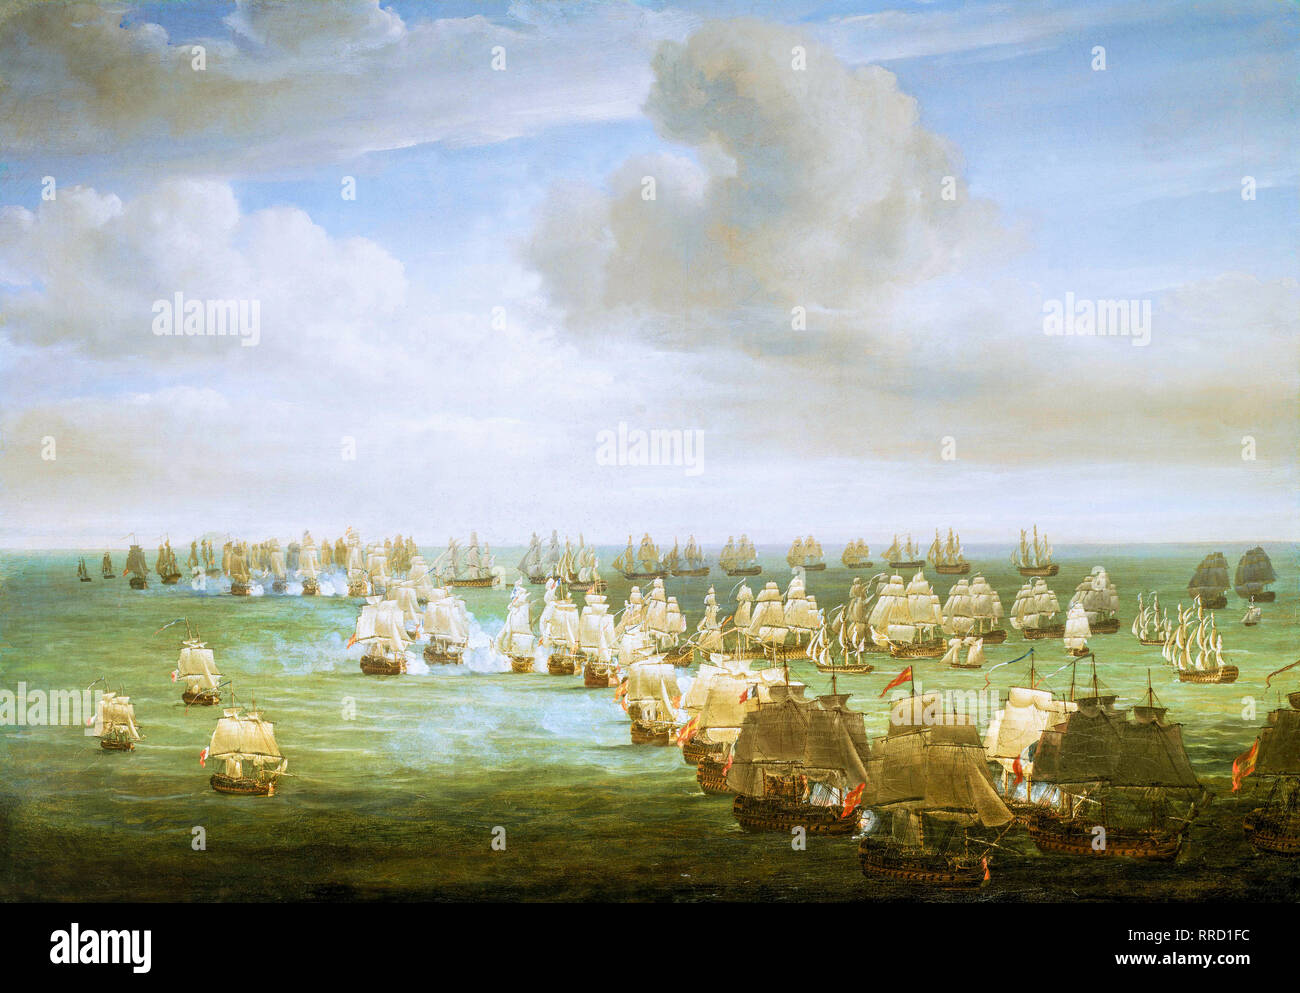 The Battle of Trafalgar, 21 October 1805, Beginning of the Action, c. 1808 by Nicholas Pocock - Stock Image